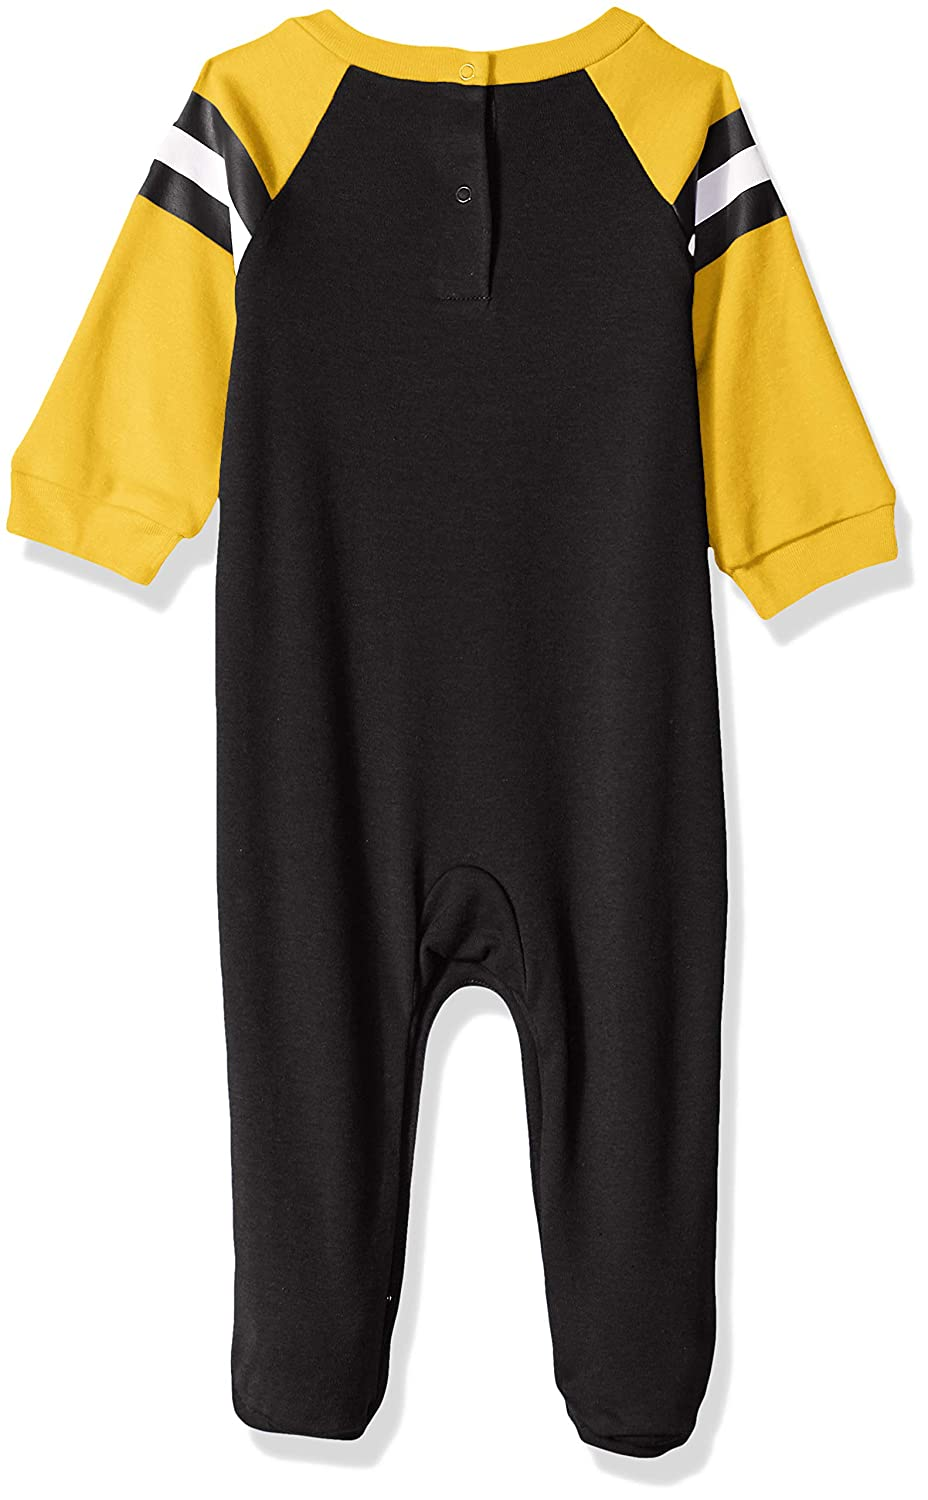 4ac976caf0f31 Amazon.com : NFL Pittsburgh Steelers Unisex-Baby Sleep 'N Play, Black, 3-6  Months : Sports & Outdoors